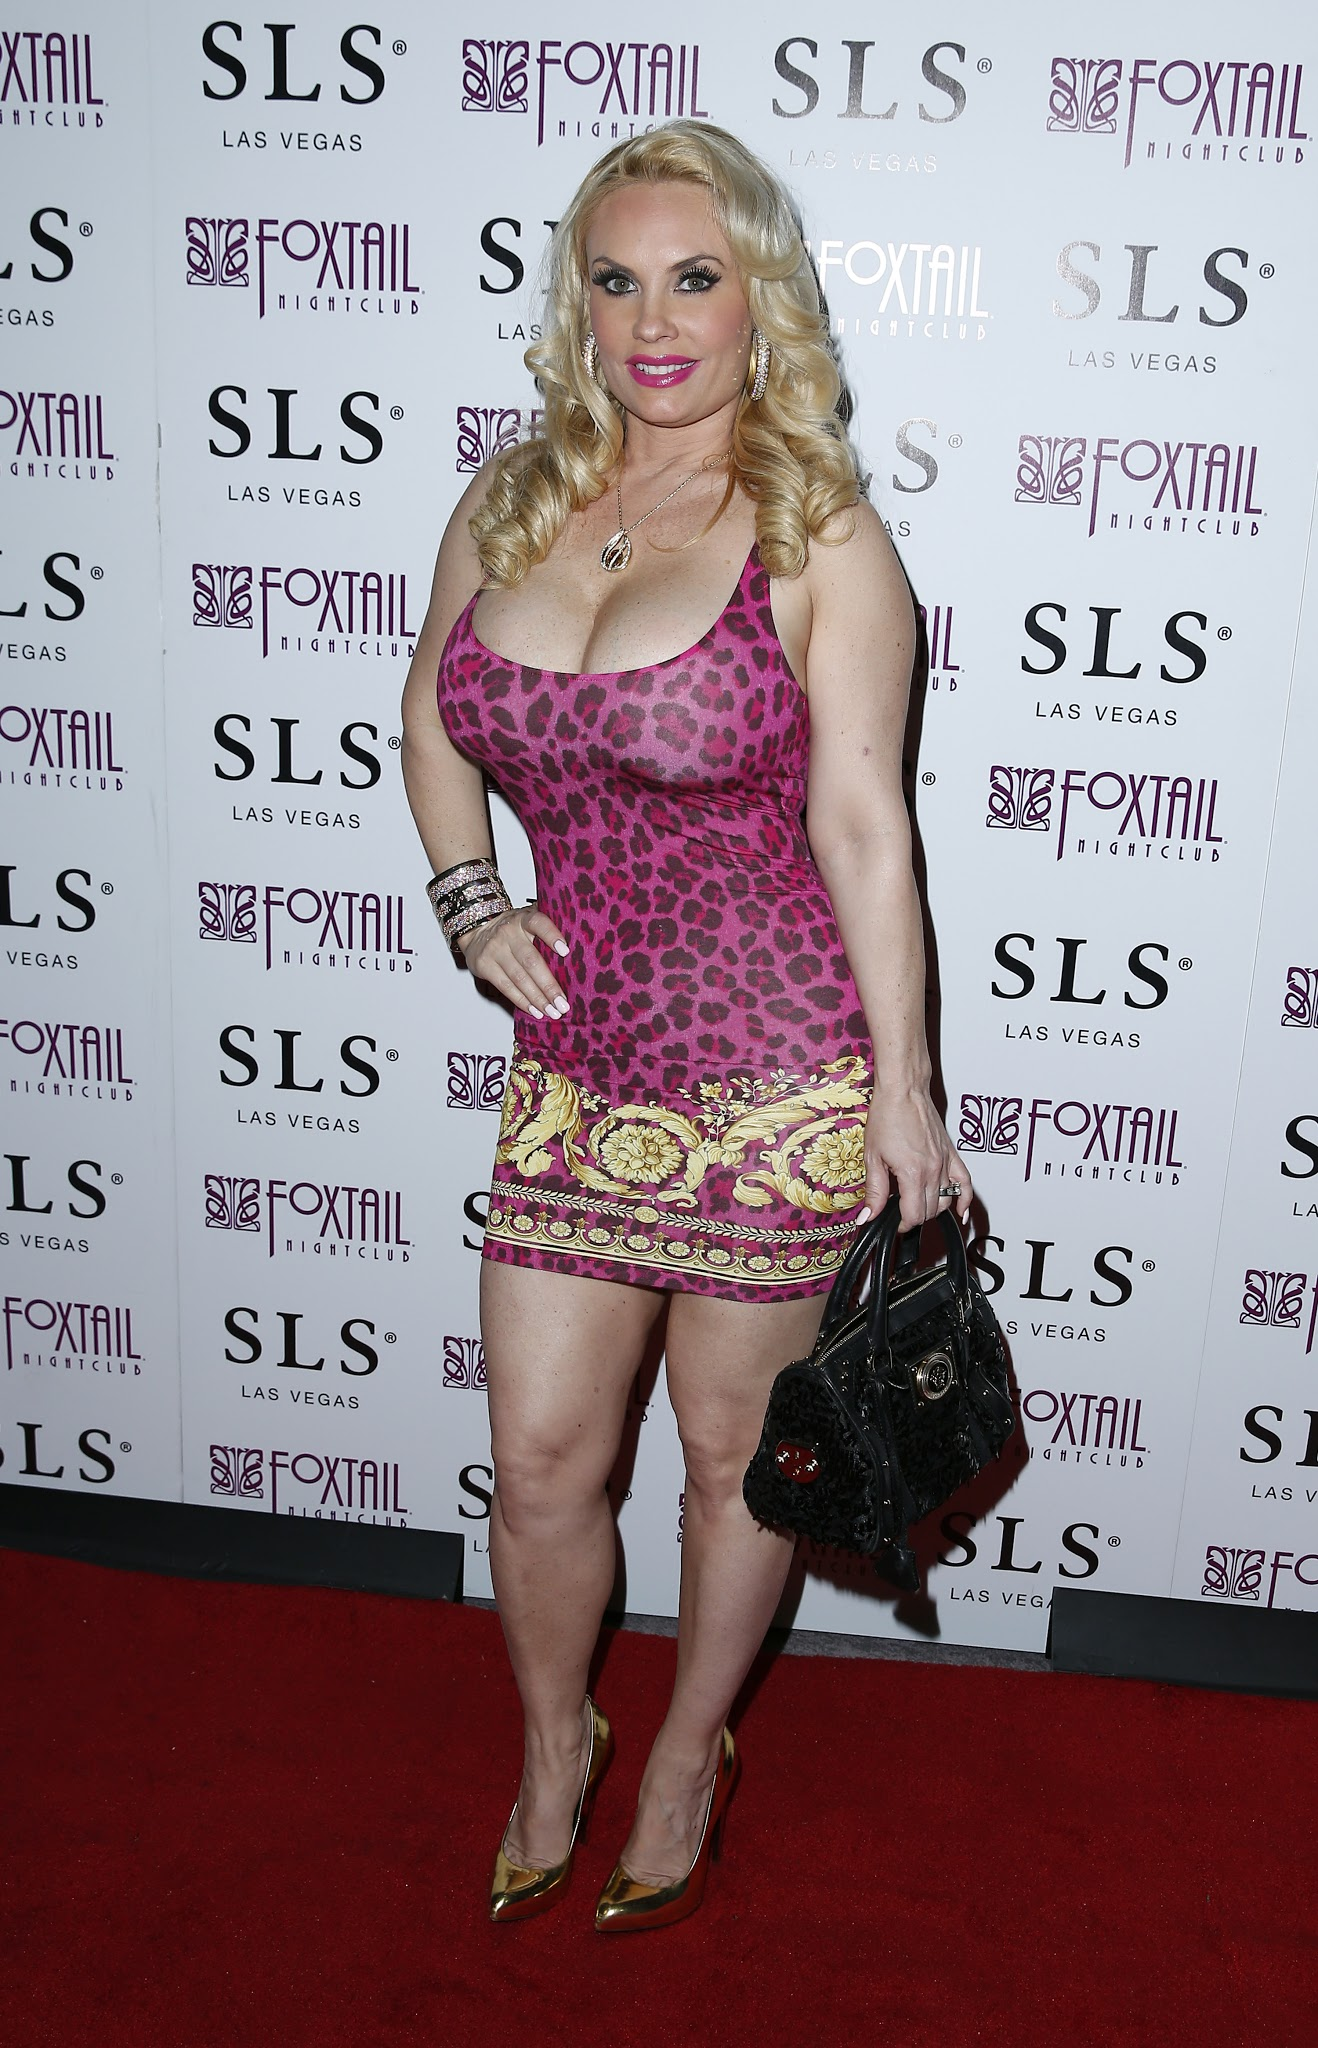 The Toe Cleavage Blog Blondes Three For Thursday Jpg X Holly Halston Dress